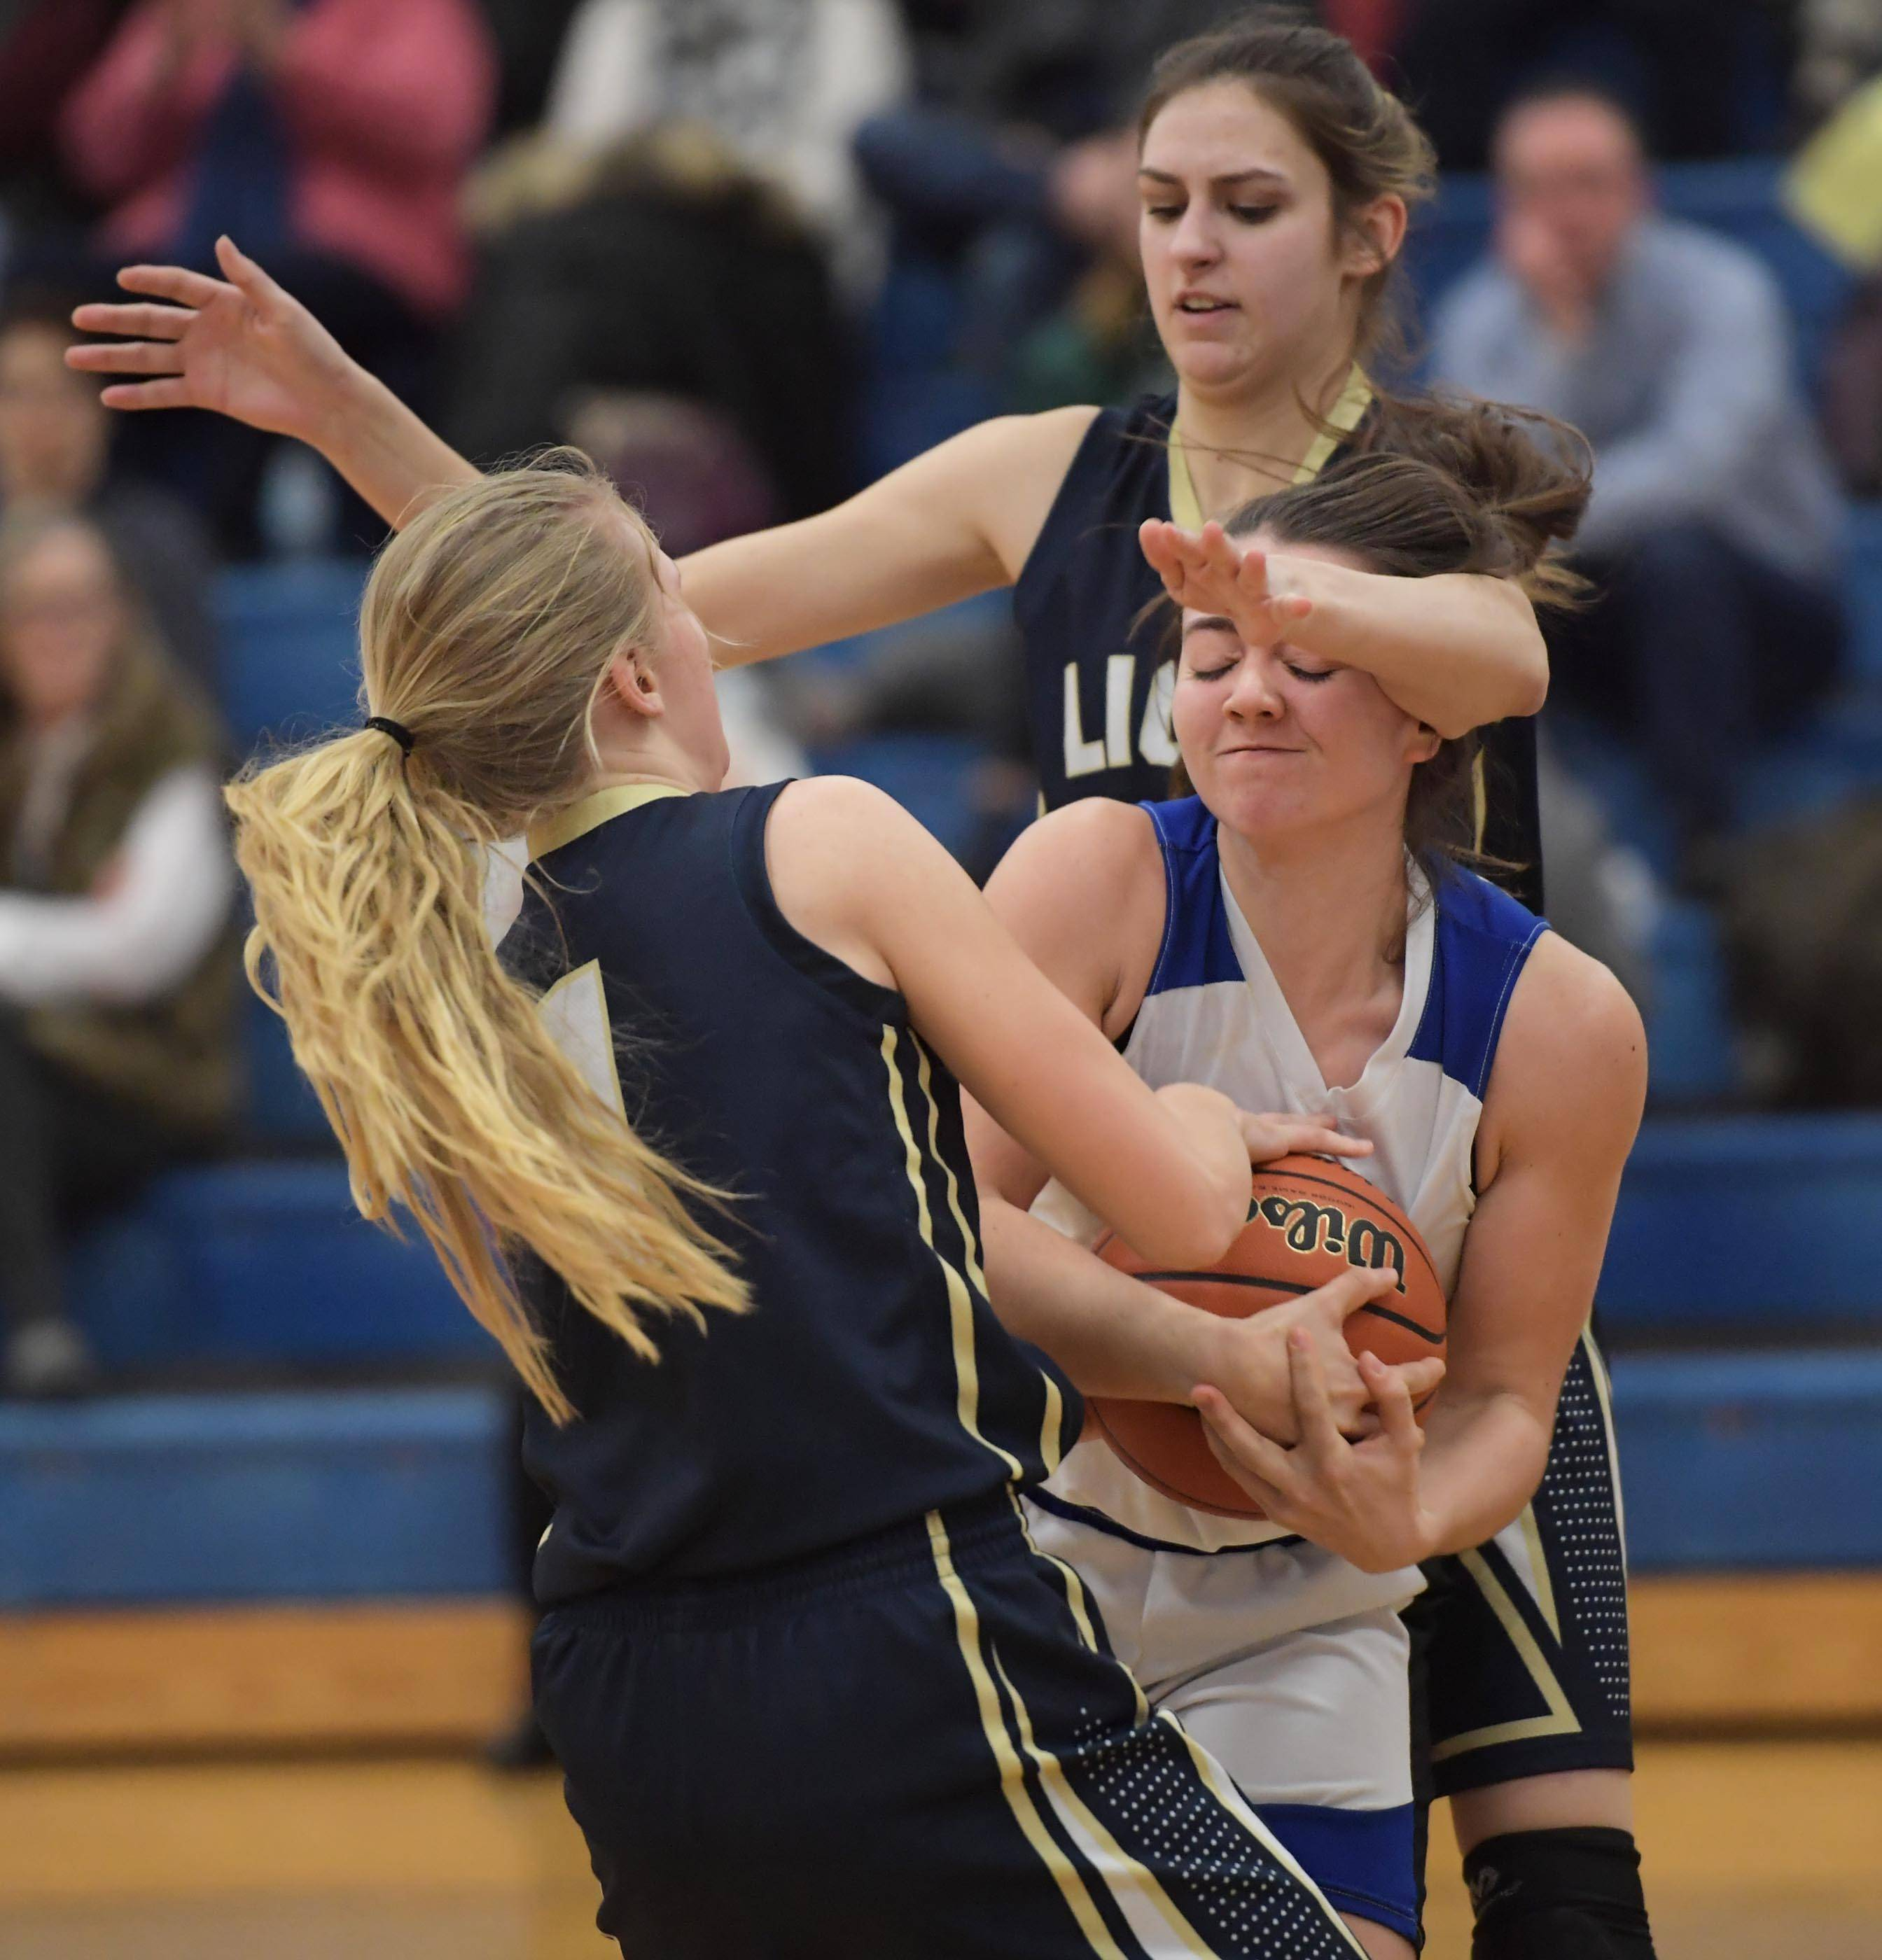 Rosary's Riley McCue struggles against Harvest Christian's Maddy Martin and Grace Ringel in a girls basketball game in Aurora Tuesday.